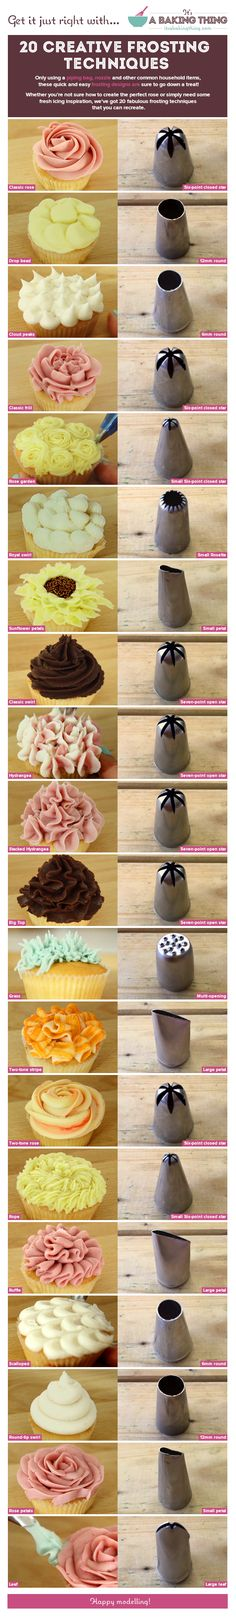 cupcake frosting tips Frostingdeko fr Cupcakes Icing Tips, Frosting Tips, Frosting Recipes, Cupcake Recipes, Cupcake Cakes, Dessert Recipes, Baking Cupcakes, Cupcake Piping, Fondant Cakes